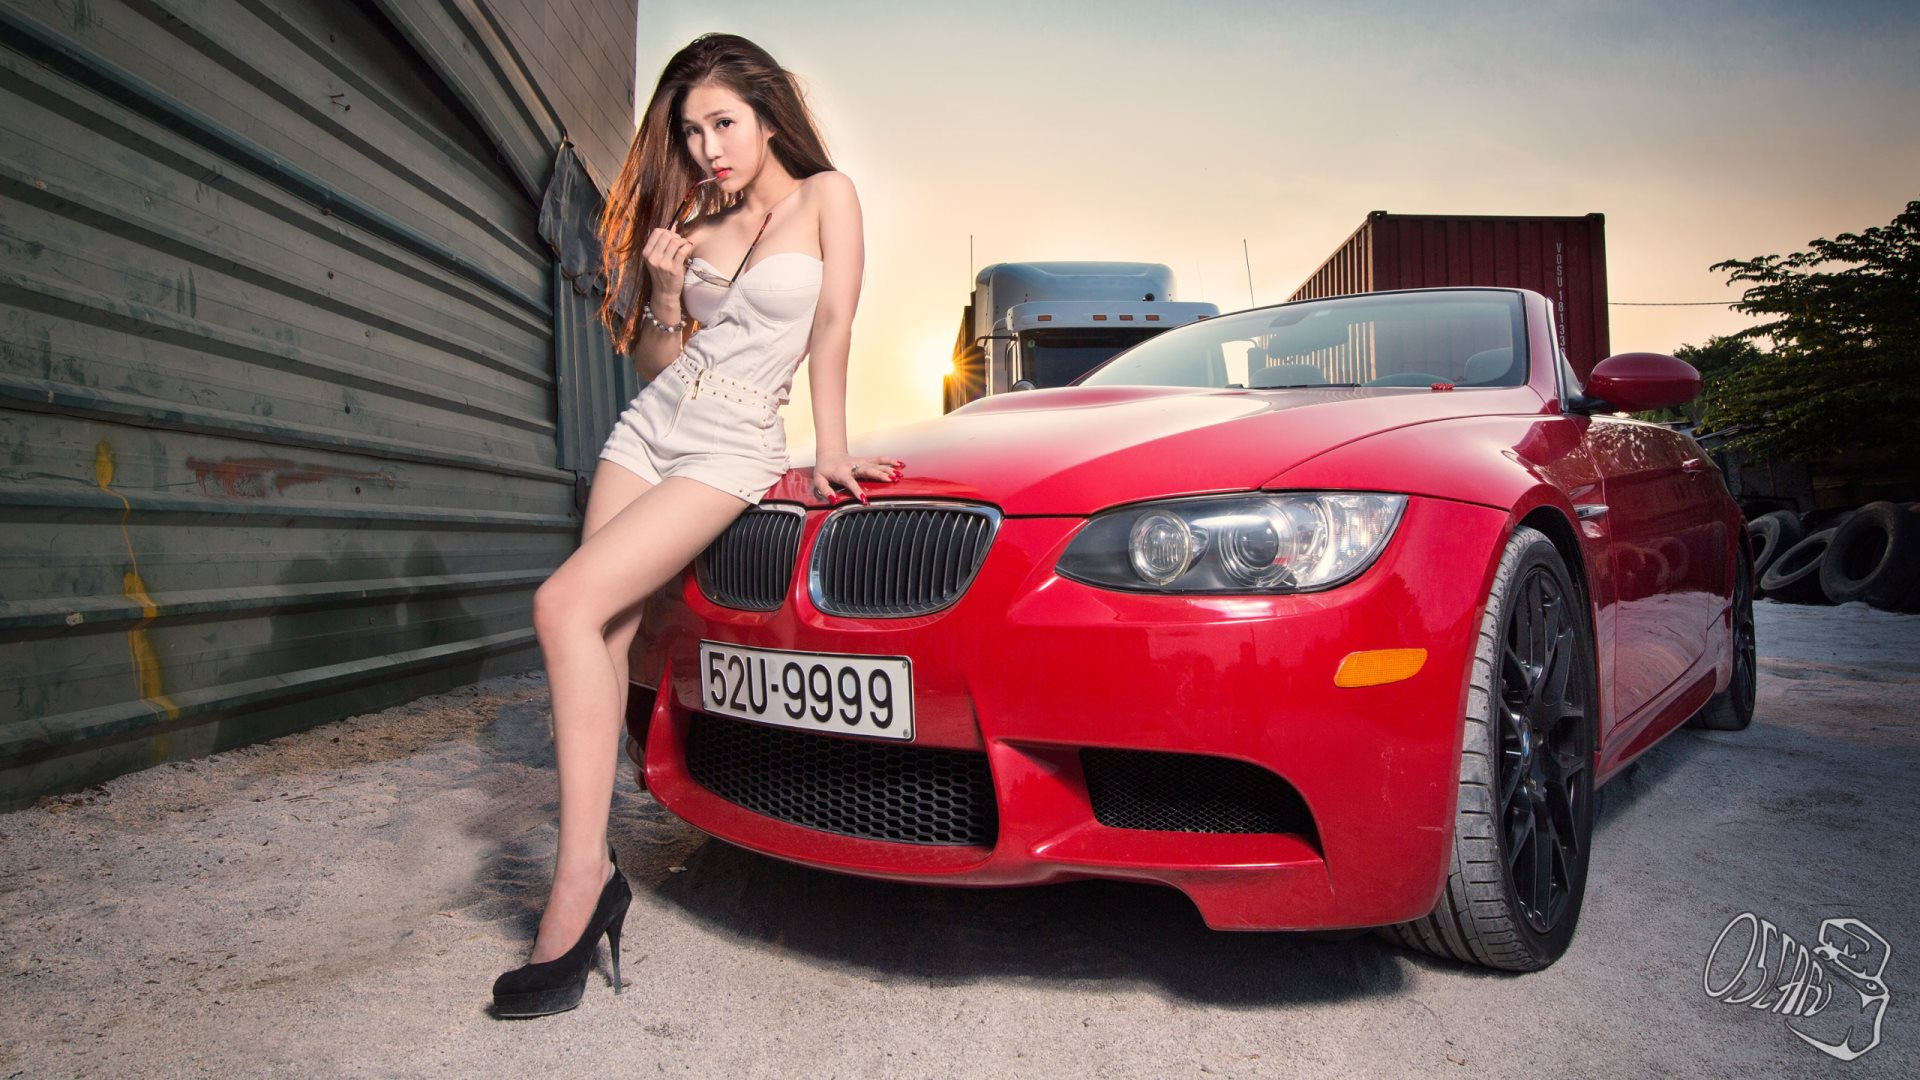 sexy cars and girls wallpaper and pictures 15 - Super Cool Cars With Girls